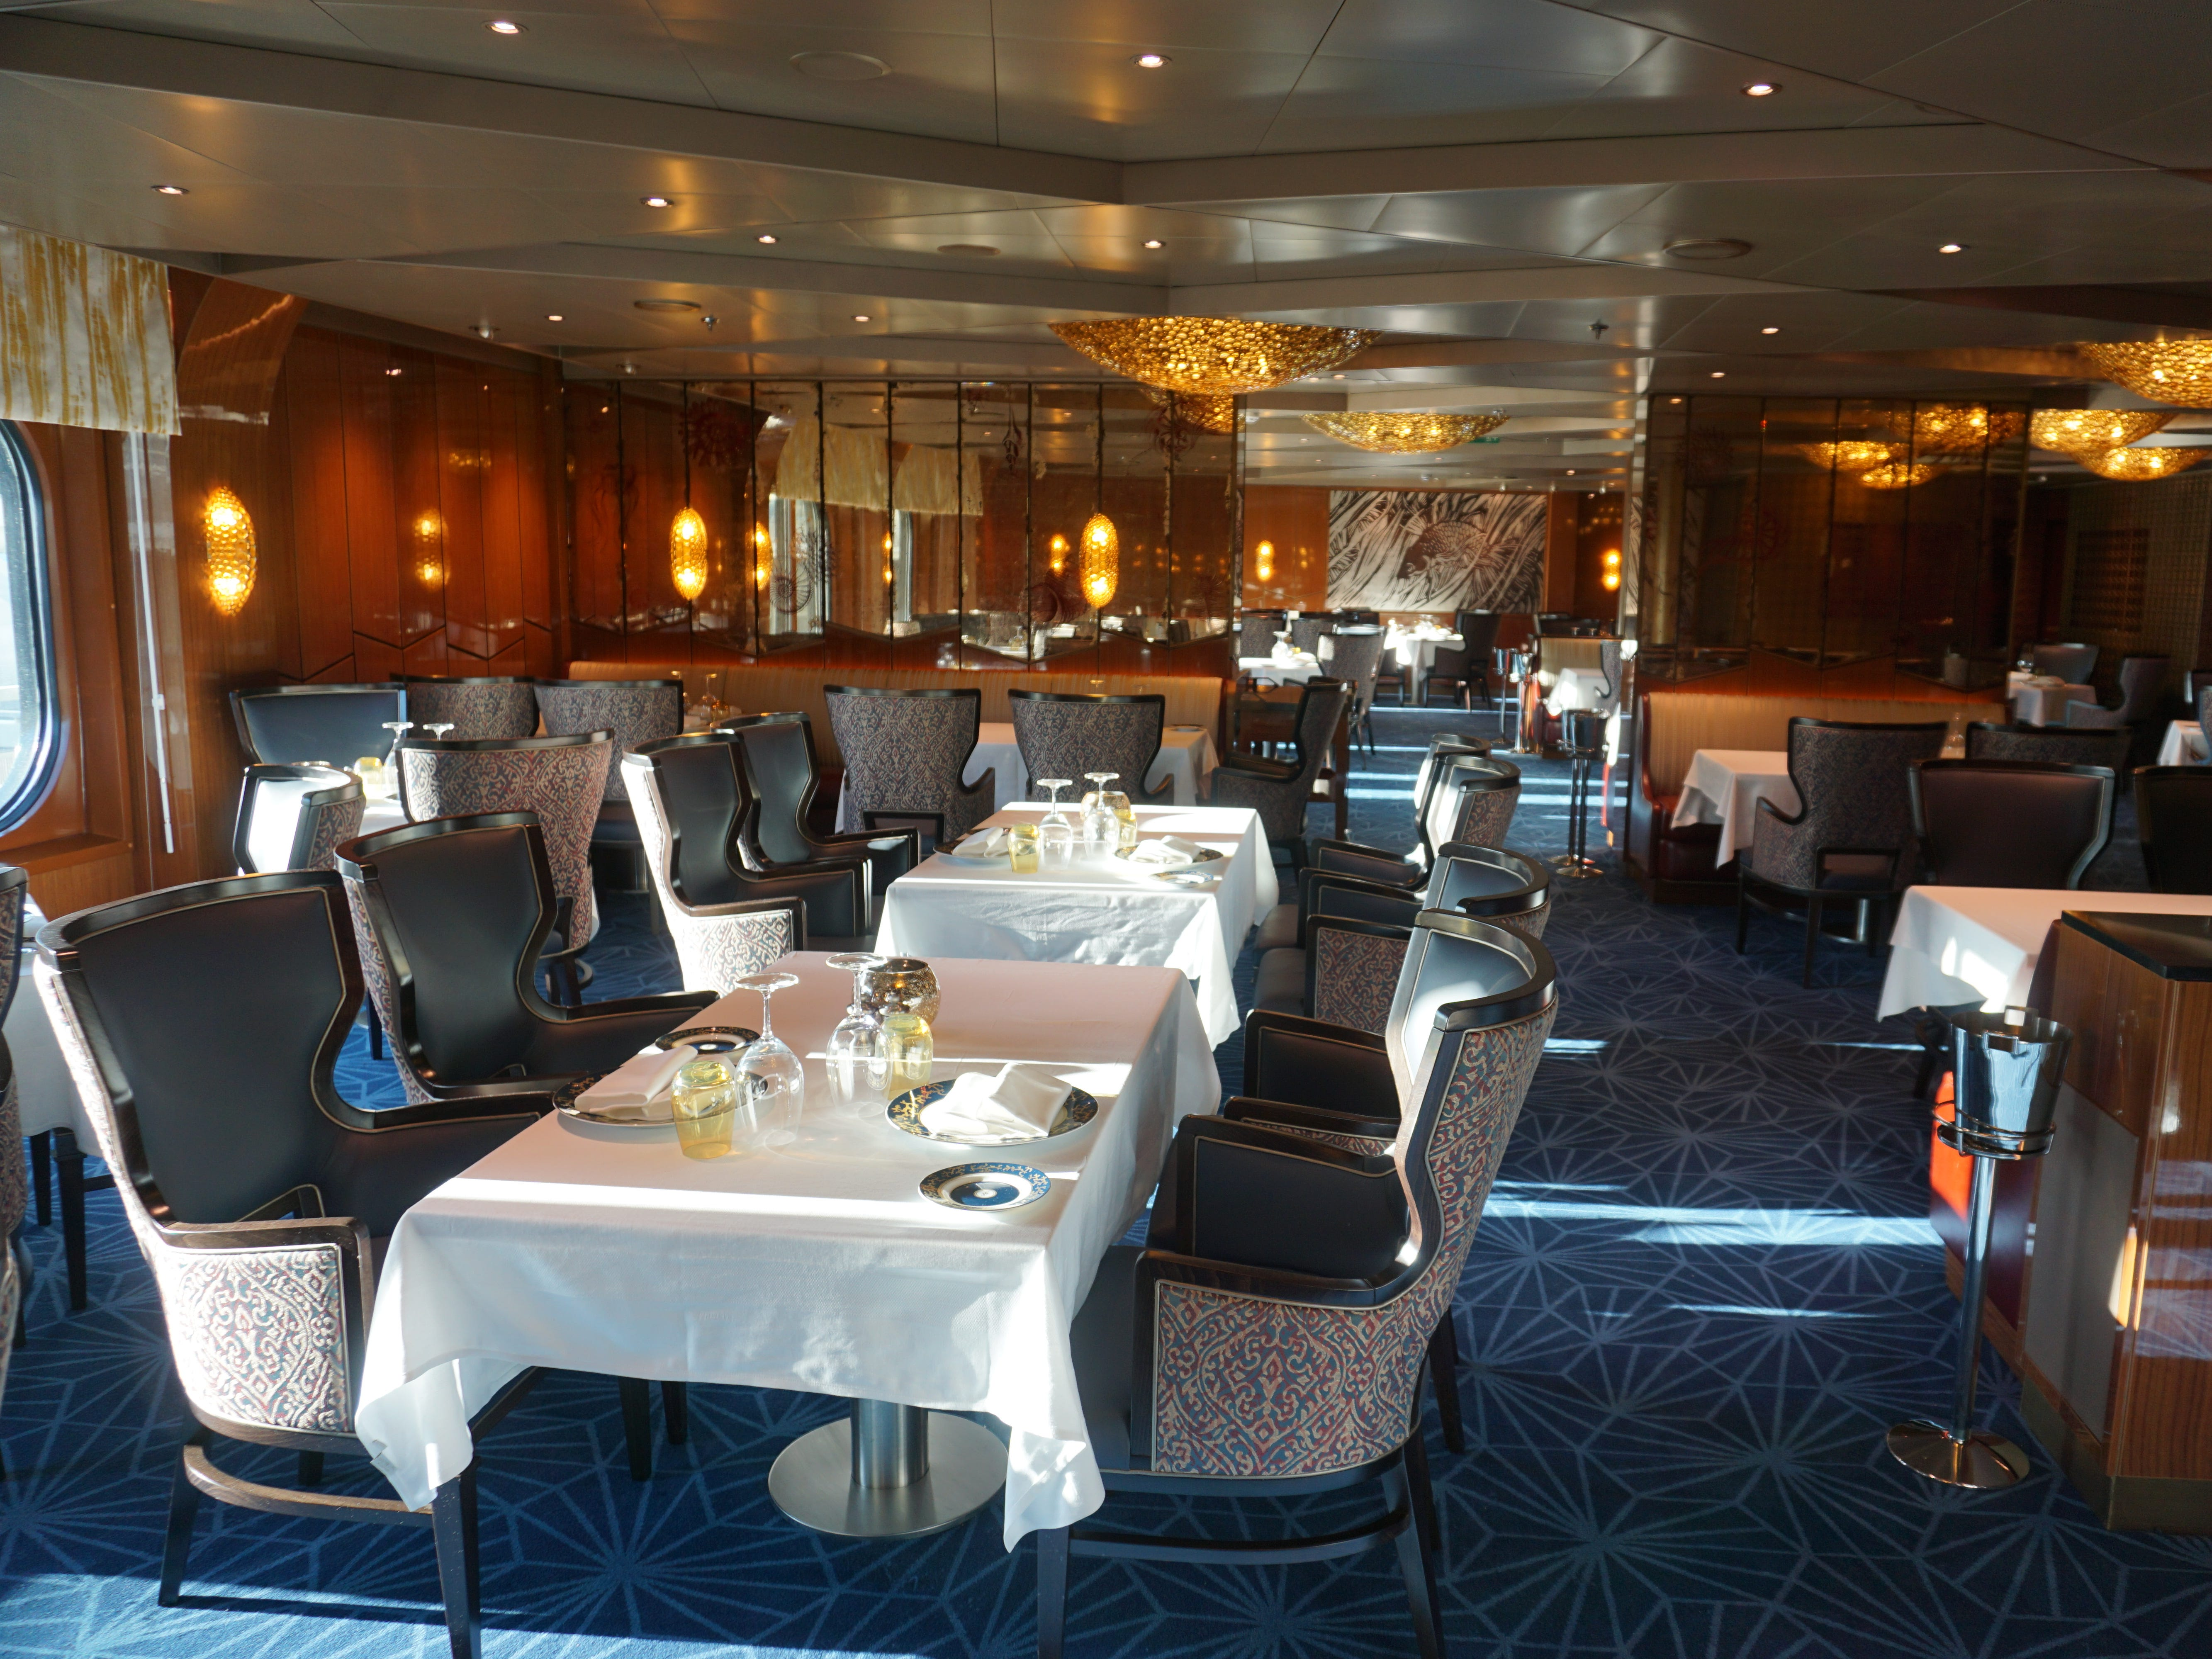 The 116-seat Pinnacle Grill is an extra-tariff Pacific Northwest-themed steakhouse on the port side of Deck 2.